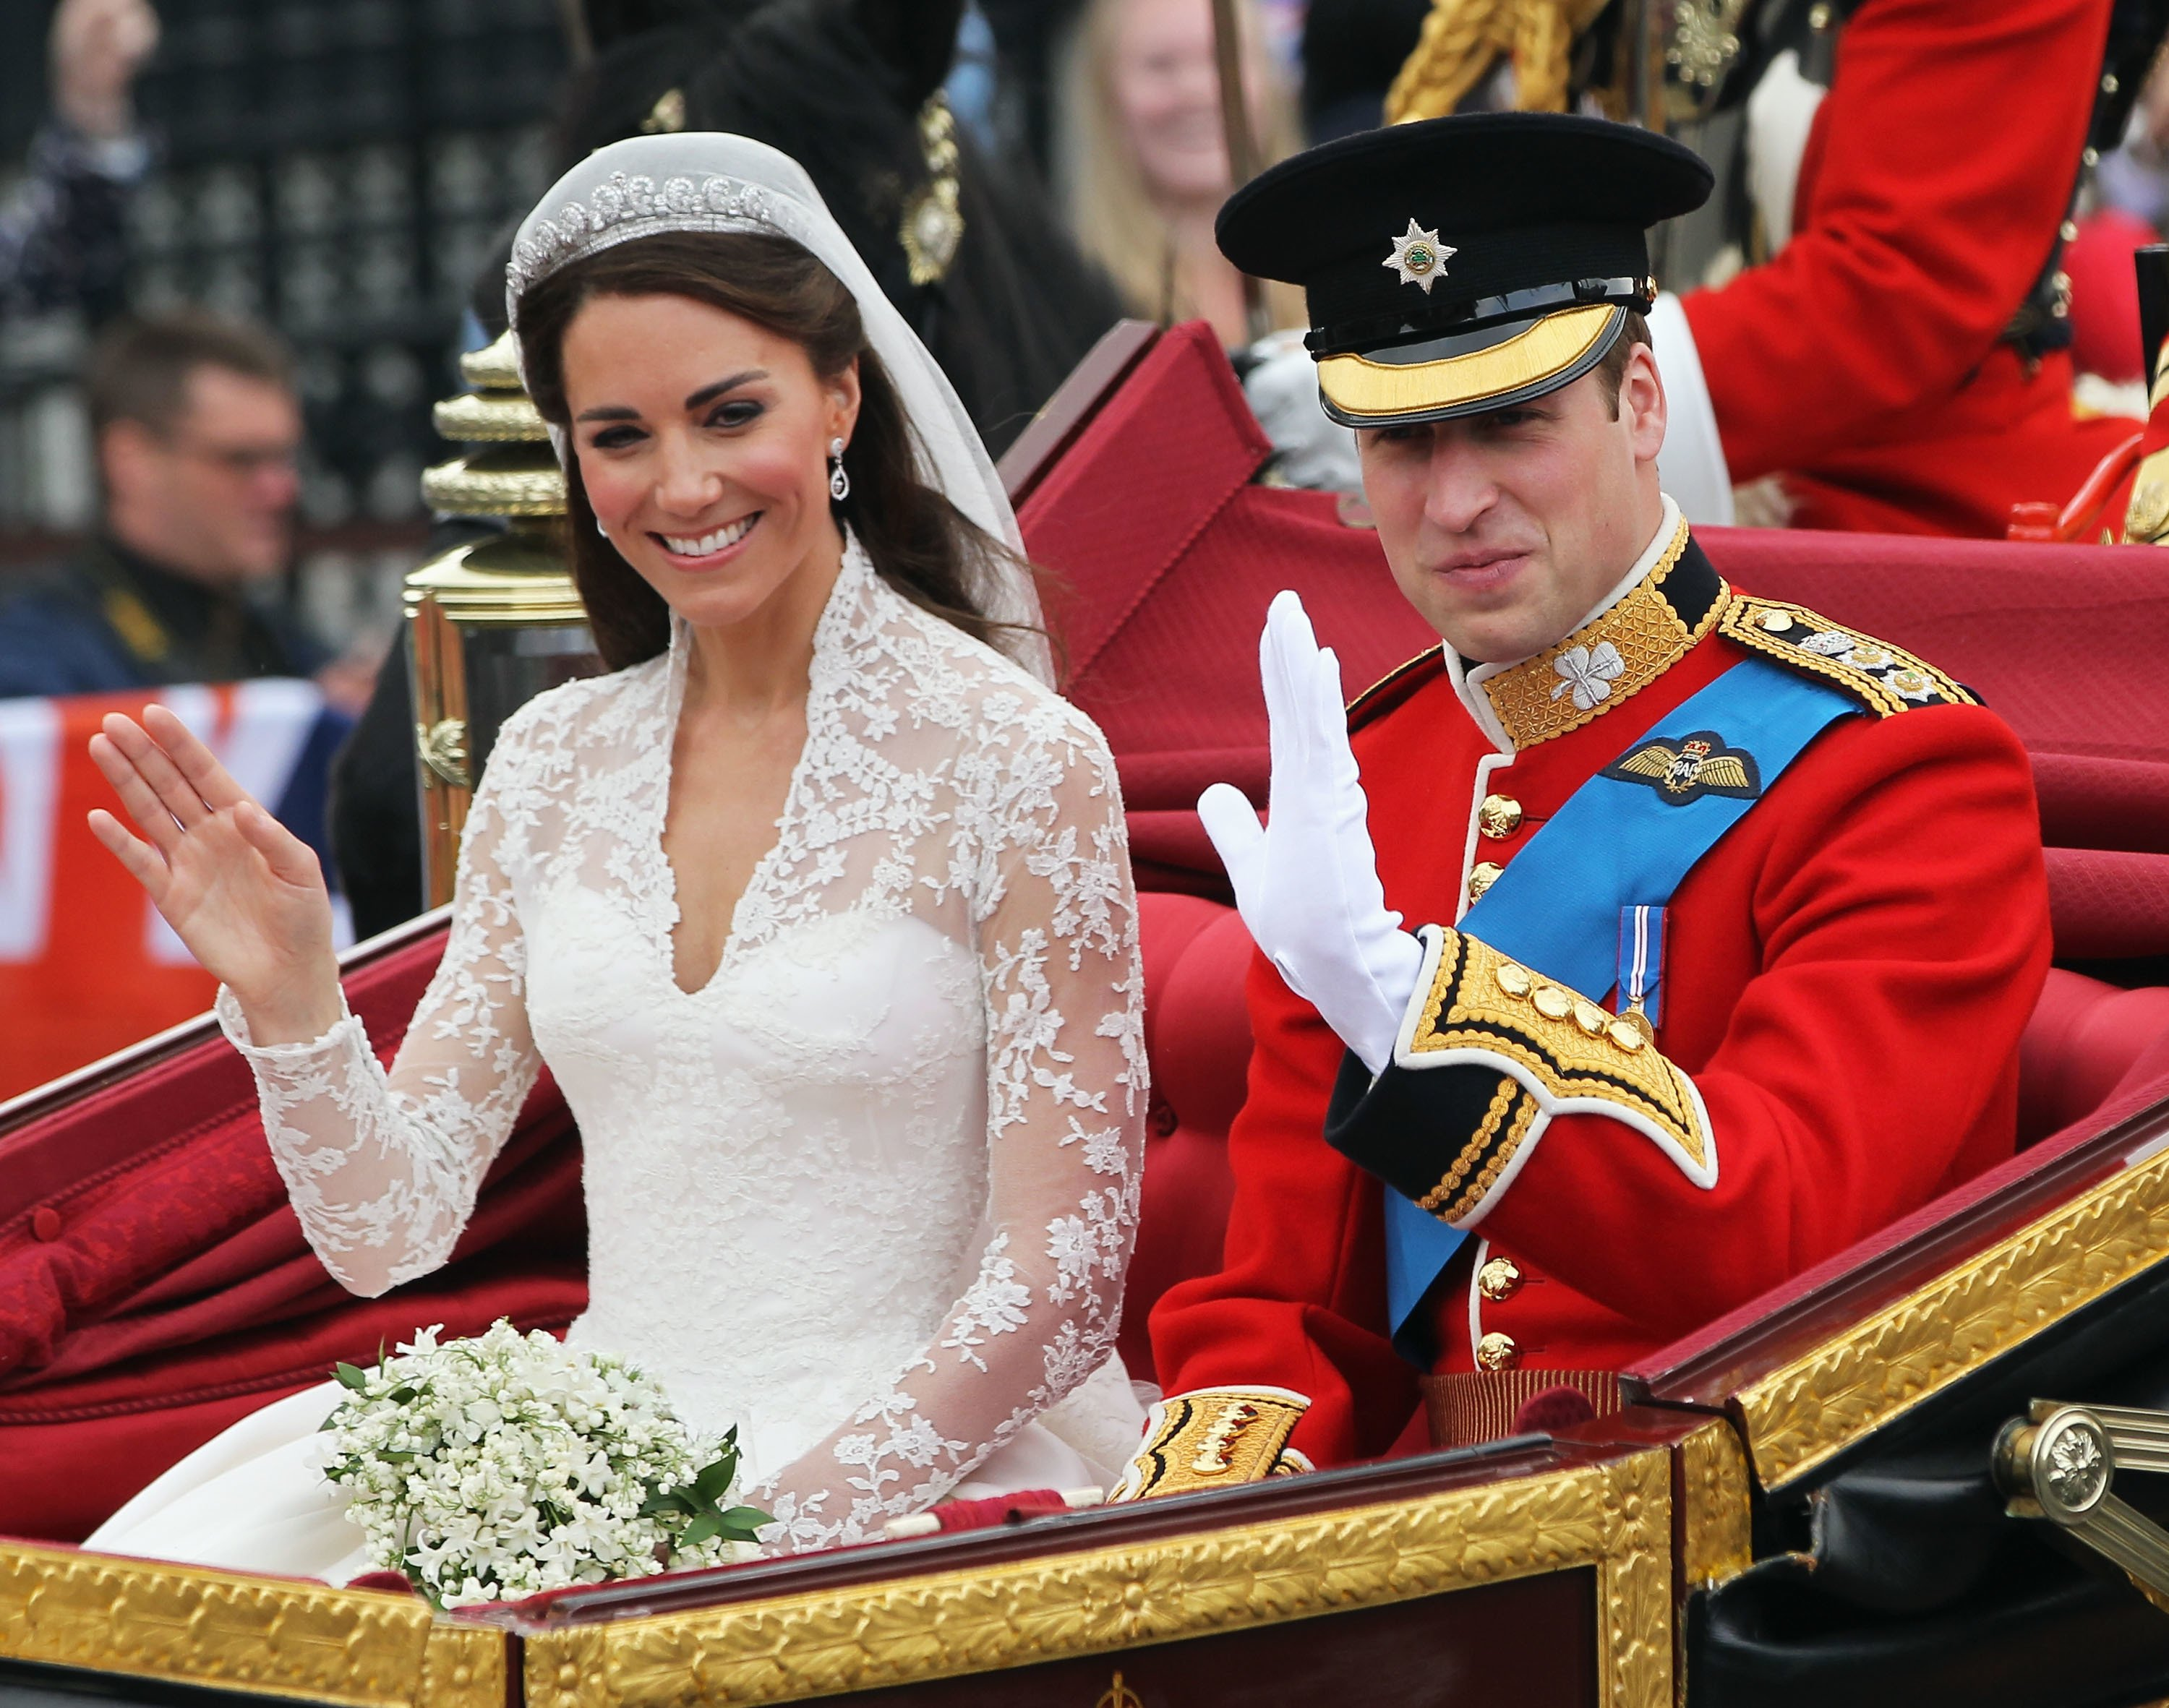 Prince William and Kate Middleton journey by carriage procession to Buckingham Palace following their marriage at Westminster Abbey on April 29, 2011 in London, England | Photo: Getty Images